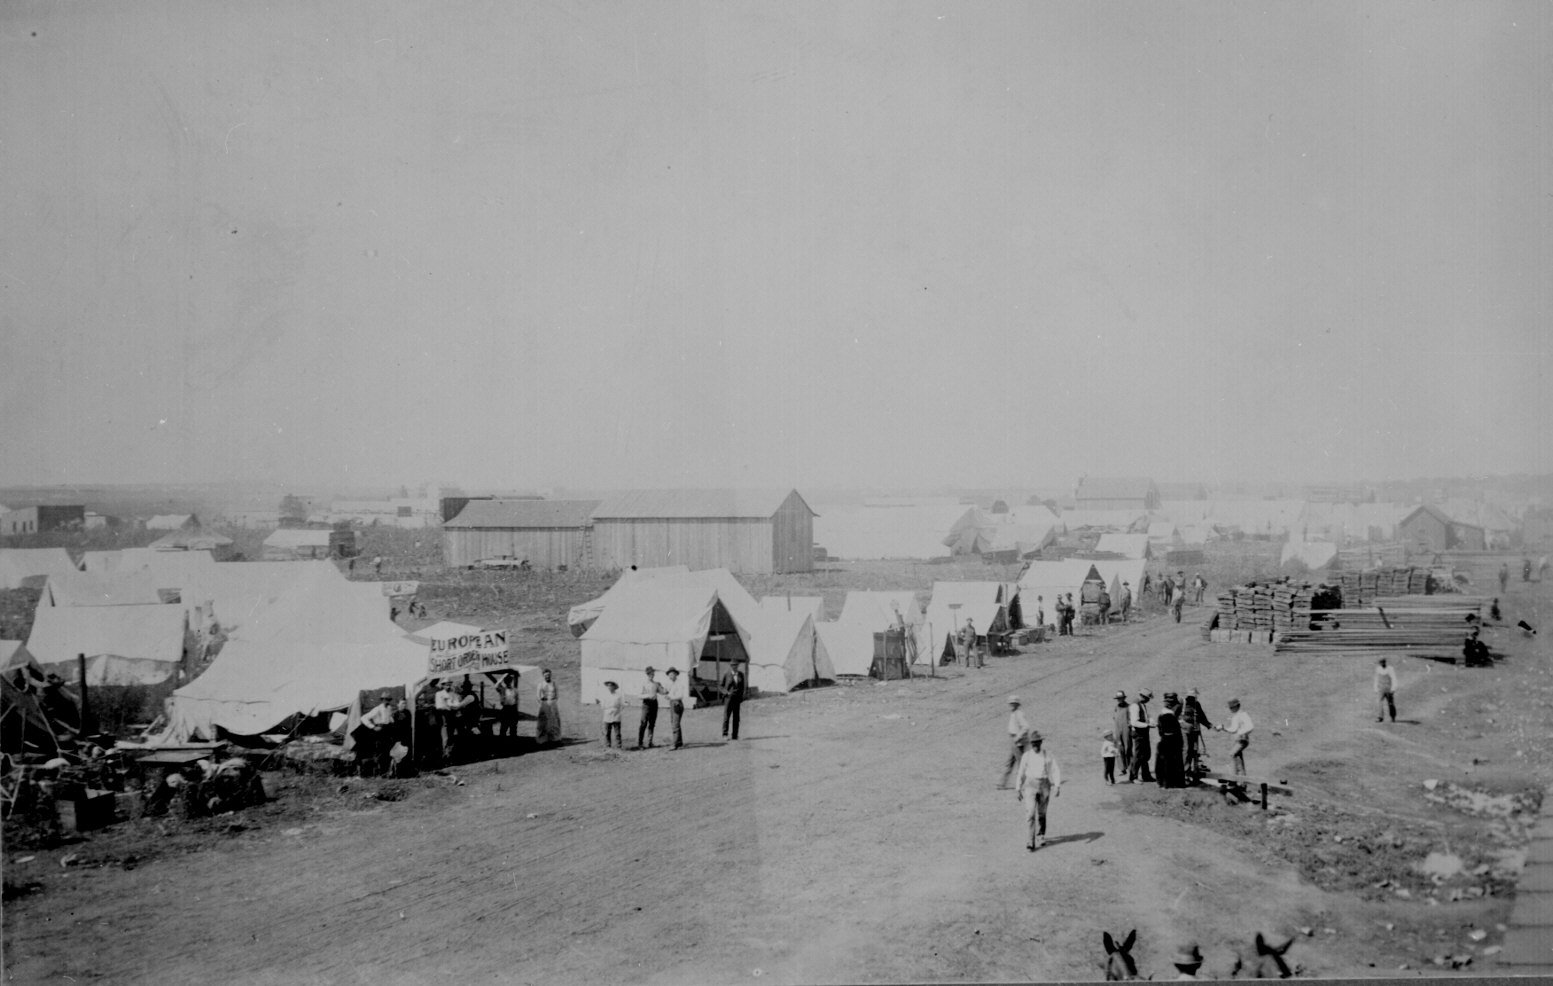 Tent City in Guthrie April 22, 1889